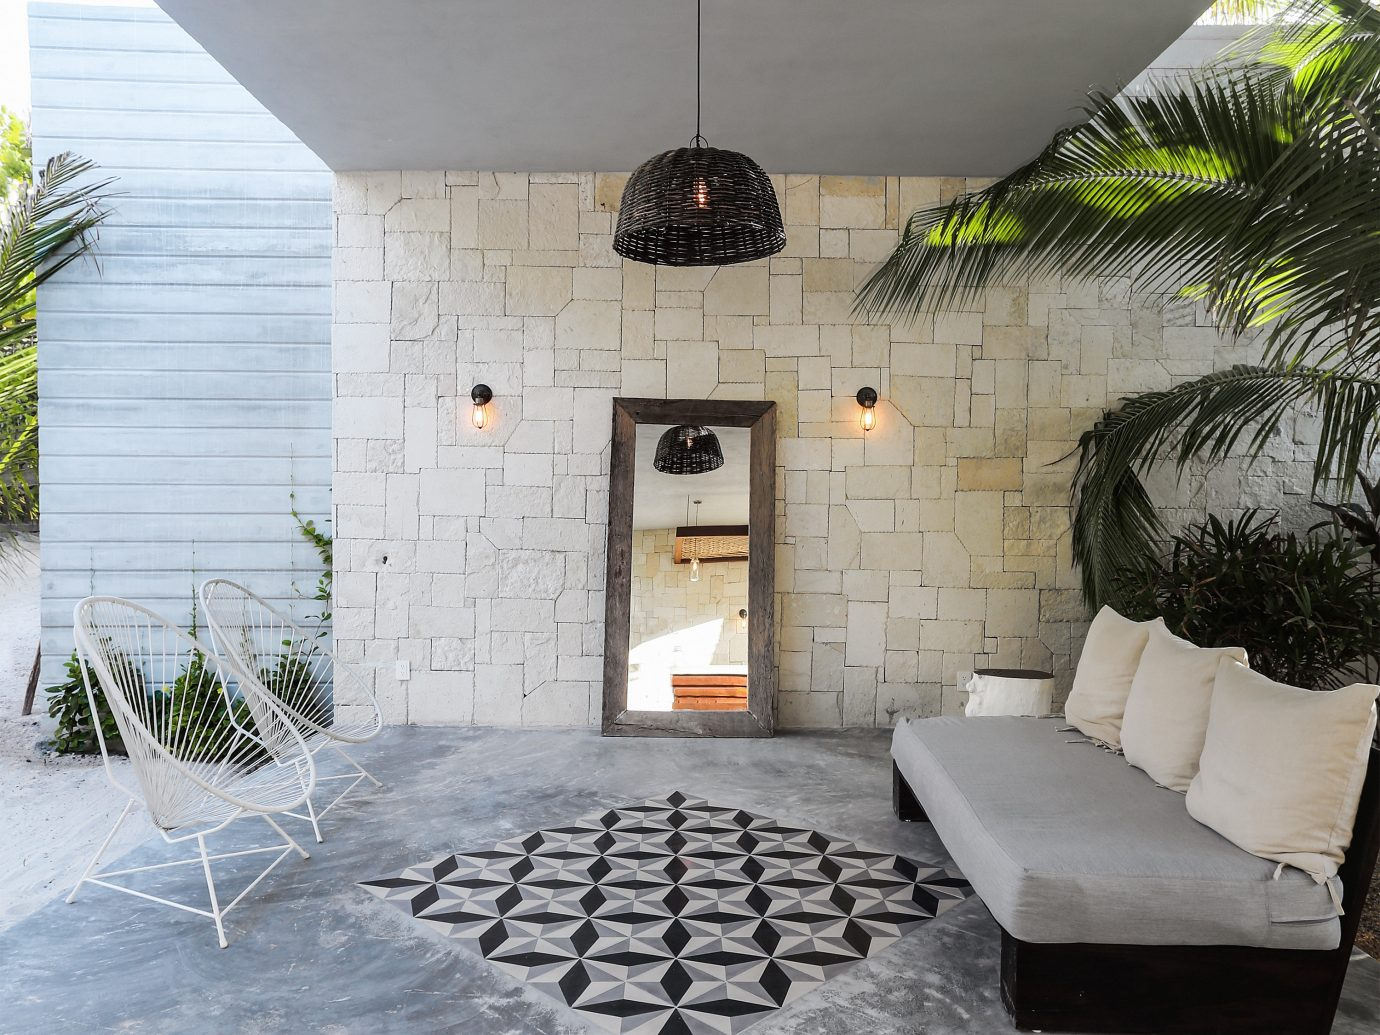 City Mexico Trip Ideas Tulum property wall house floor home Courtyard backyard hearth estate cottage interior design Patio flooring living room outdoor structure farmhouse porch Villa hacienda